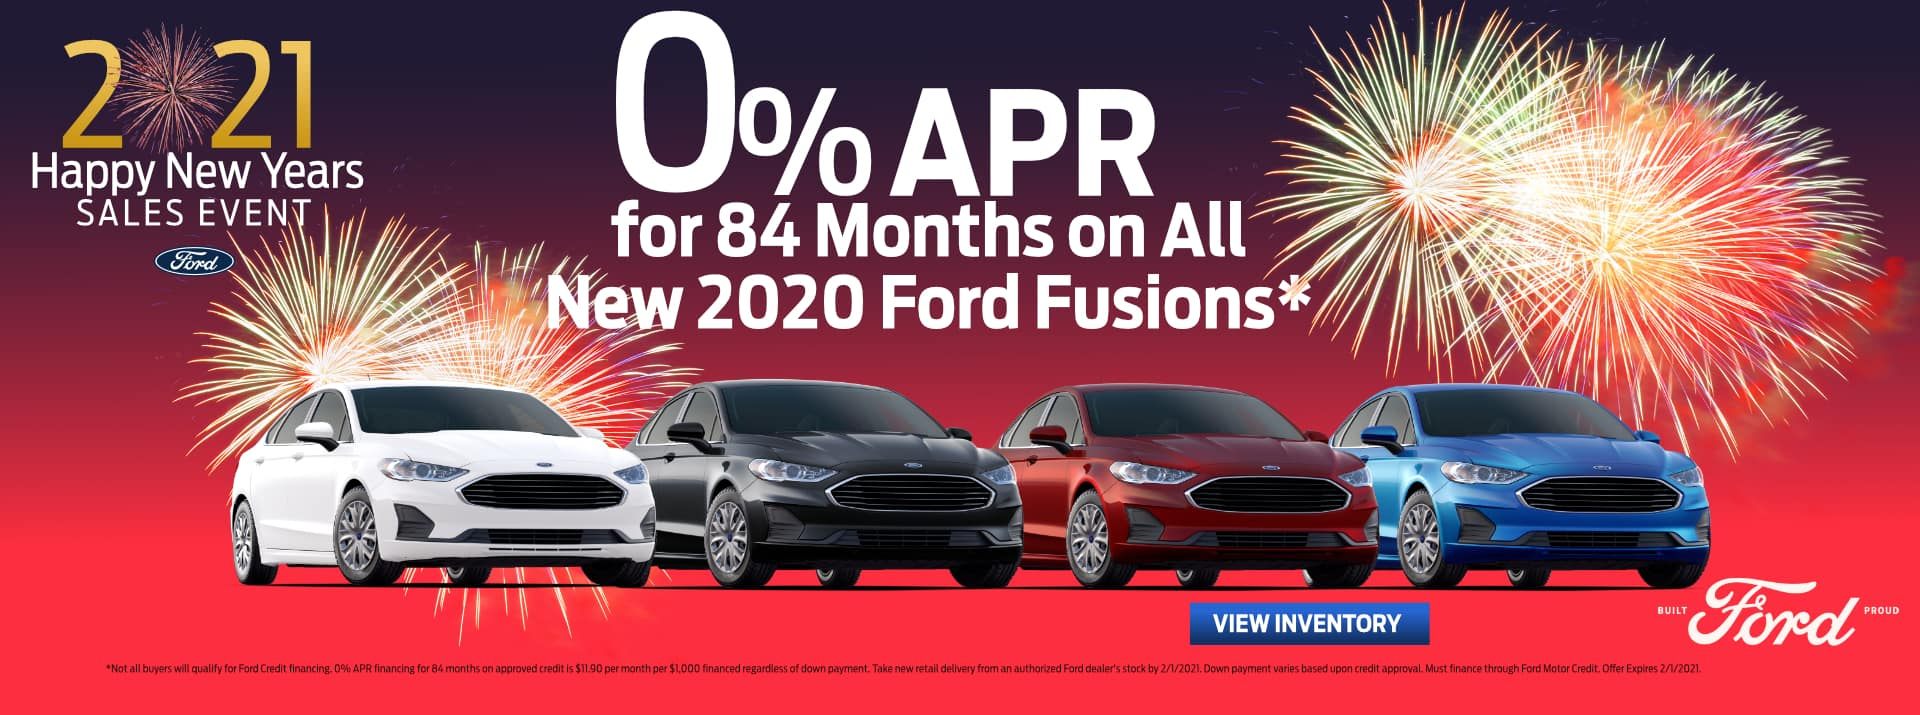 January-2021 Ford FUSION GENERAL Palm Springs Ford